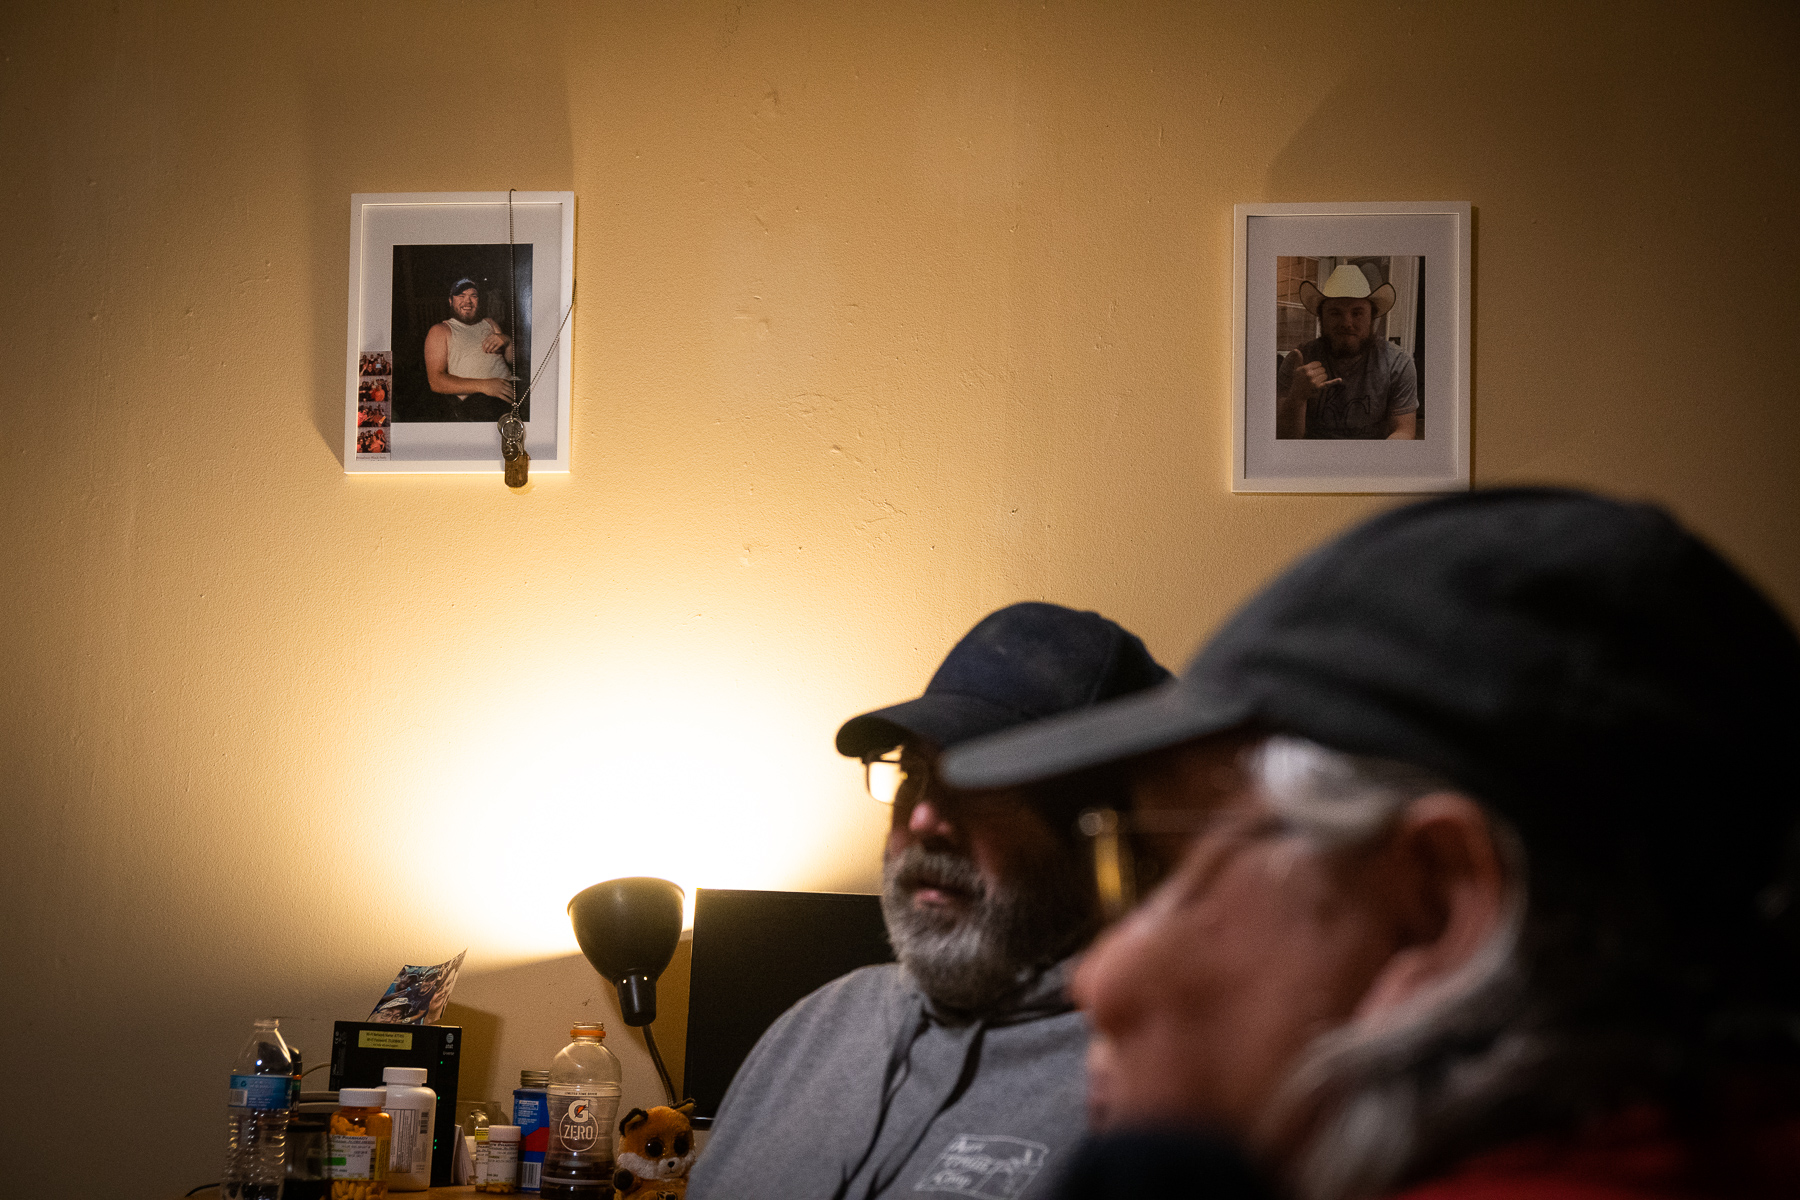 Photos of Casey Schardein, who died in a car accident on August 18, 2018, hang in the living room of his parents, Ed and Iwonne Schardein of Herington, Kansas, on January 15, 2019.